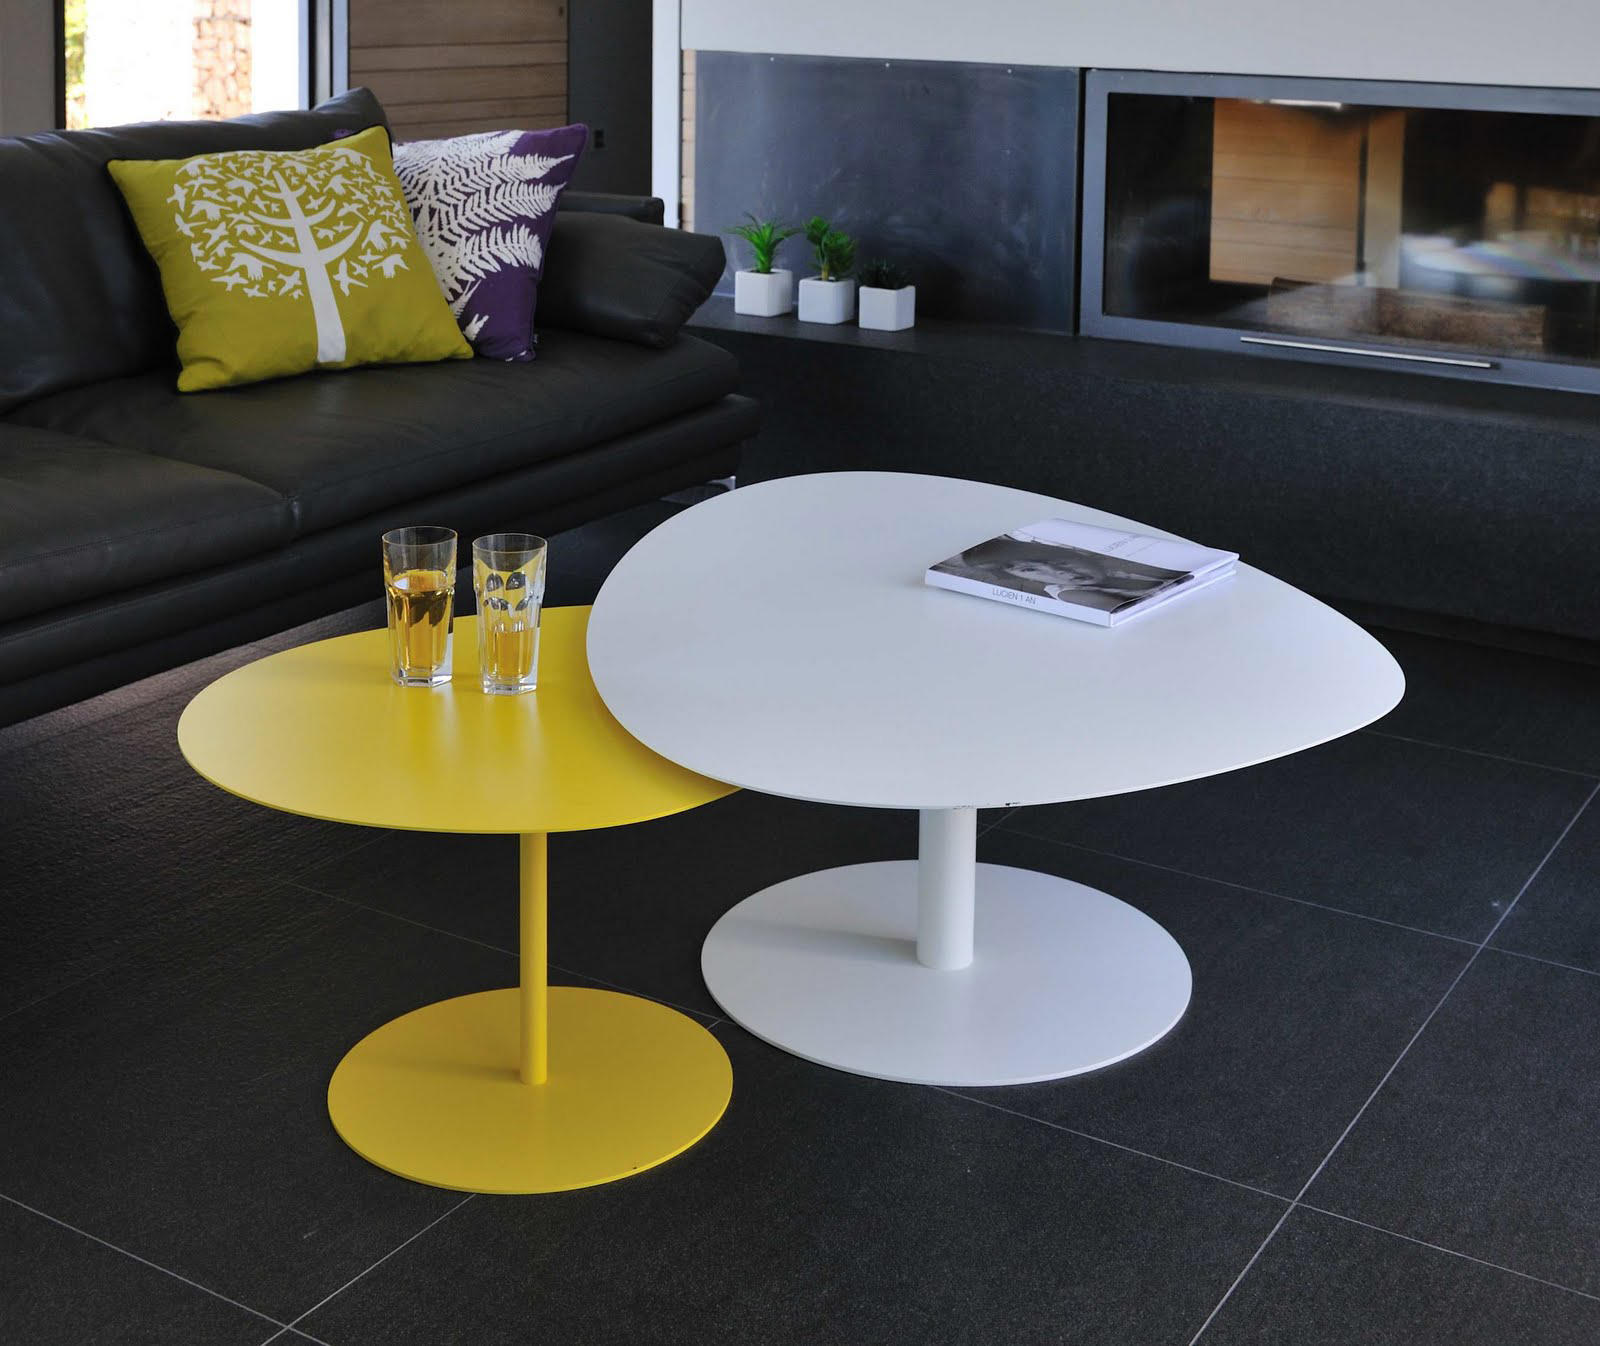 Galet table 1 coffee tables from mati re grise architonic - Table basse grise laquee ...